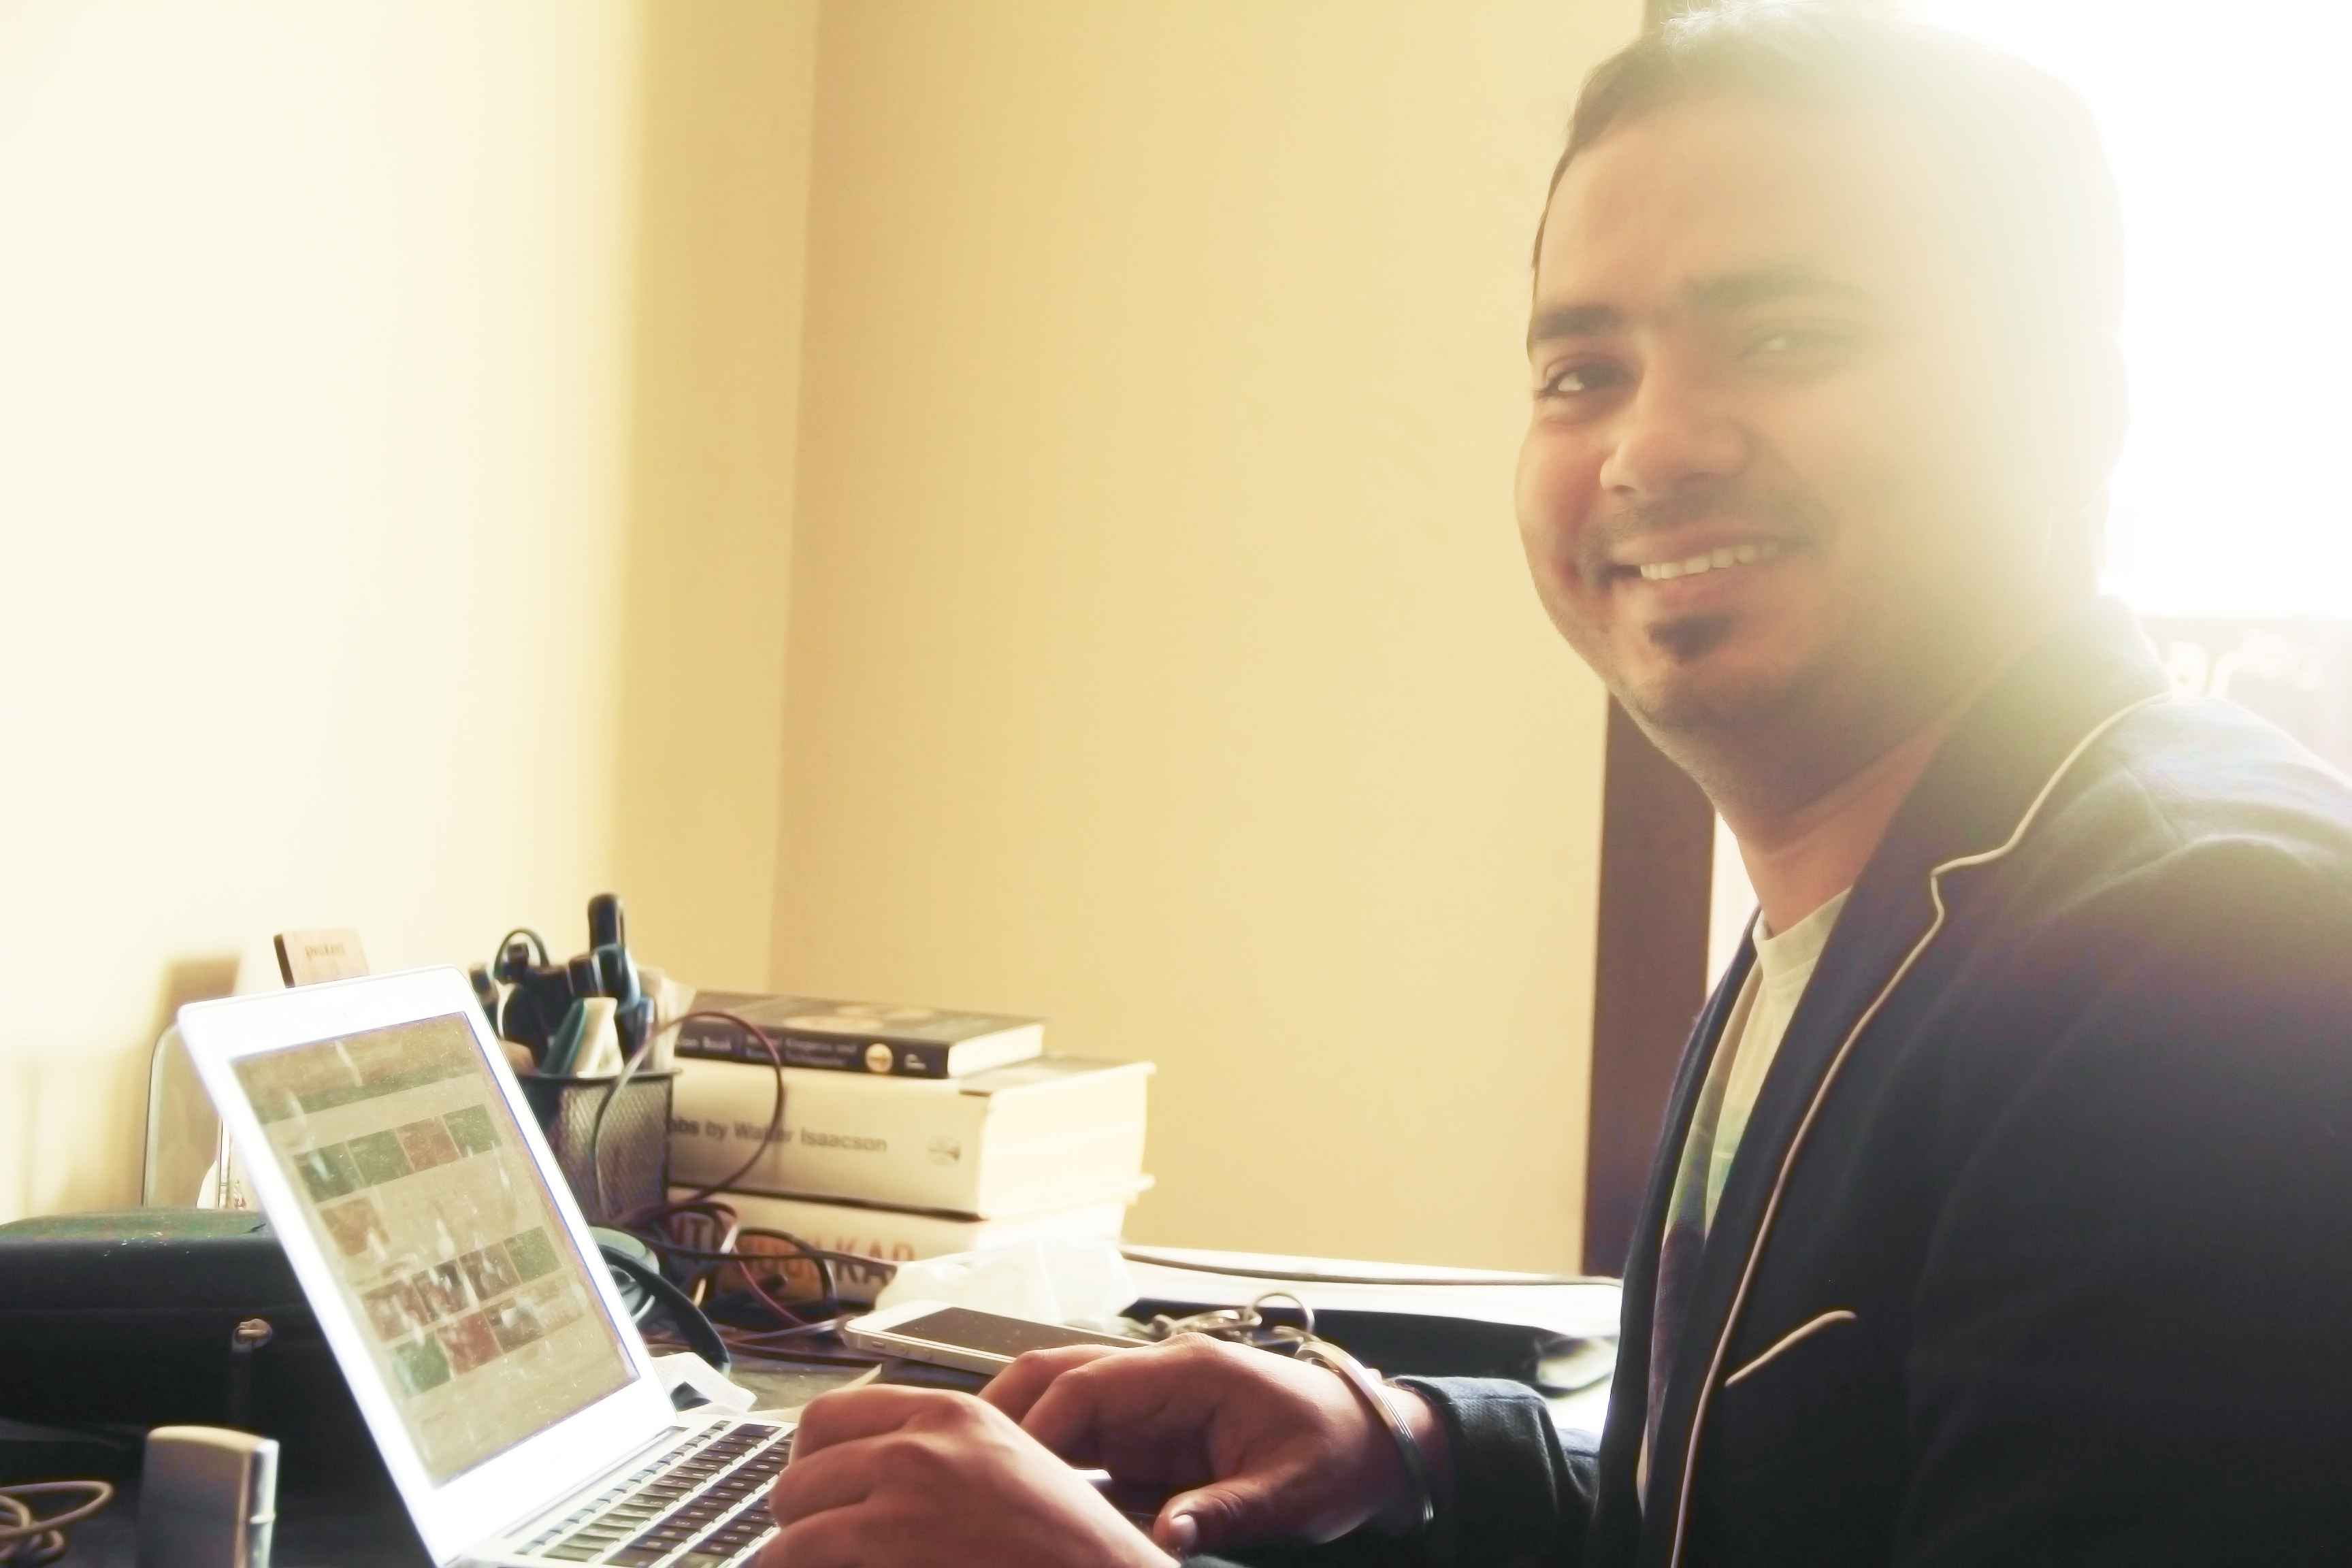 Inspiring Interview of Ashutosh Kumar (Co-founder @ Testbook.com)